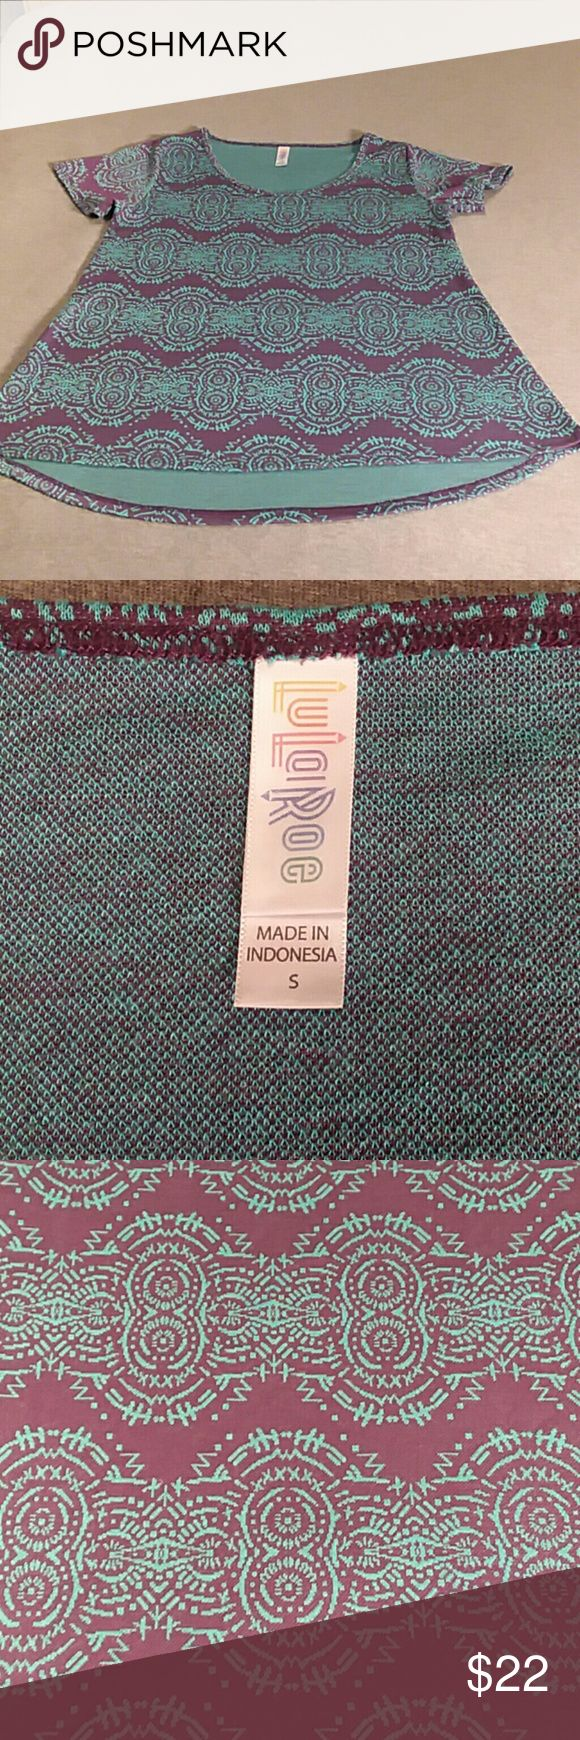 LuLaRoe Classic Tee Style Top Small Geometric Worn once, like new, LuLaRoe women's classic tee top, size small, colors of purple and aqua blue, in an geometric Aztec pattern.   Please see pictures for the measurements.  There is one very small pull, very hard to see in the picture with the pen point.  Longer in back, shorter in front.  Pretty colors and soft, clean too.  I'm petite, only reason why I'm selling this. LuLaRoe Tops Tees - Short Sleeve